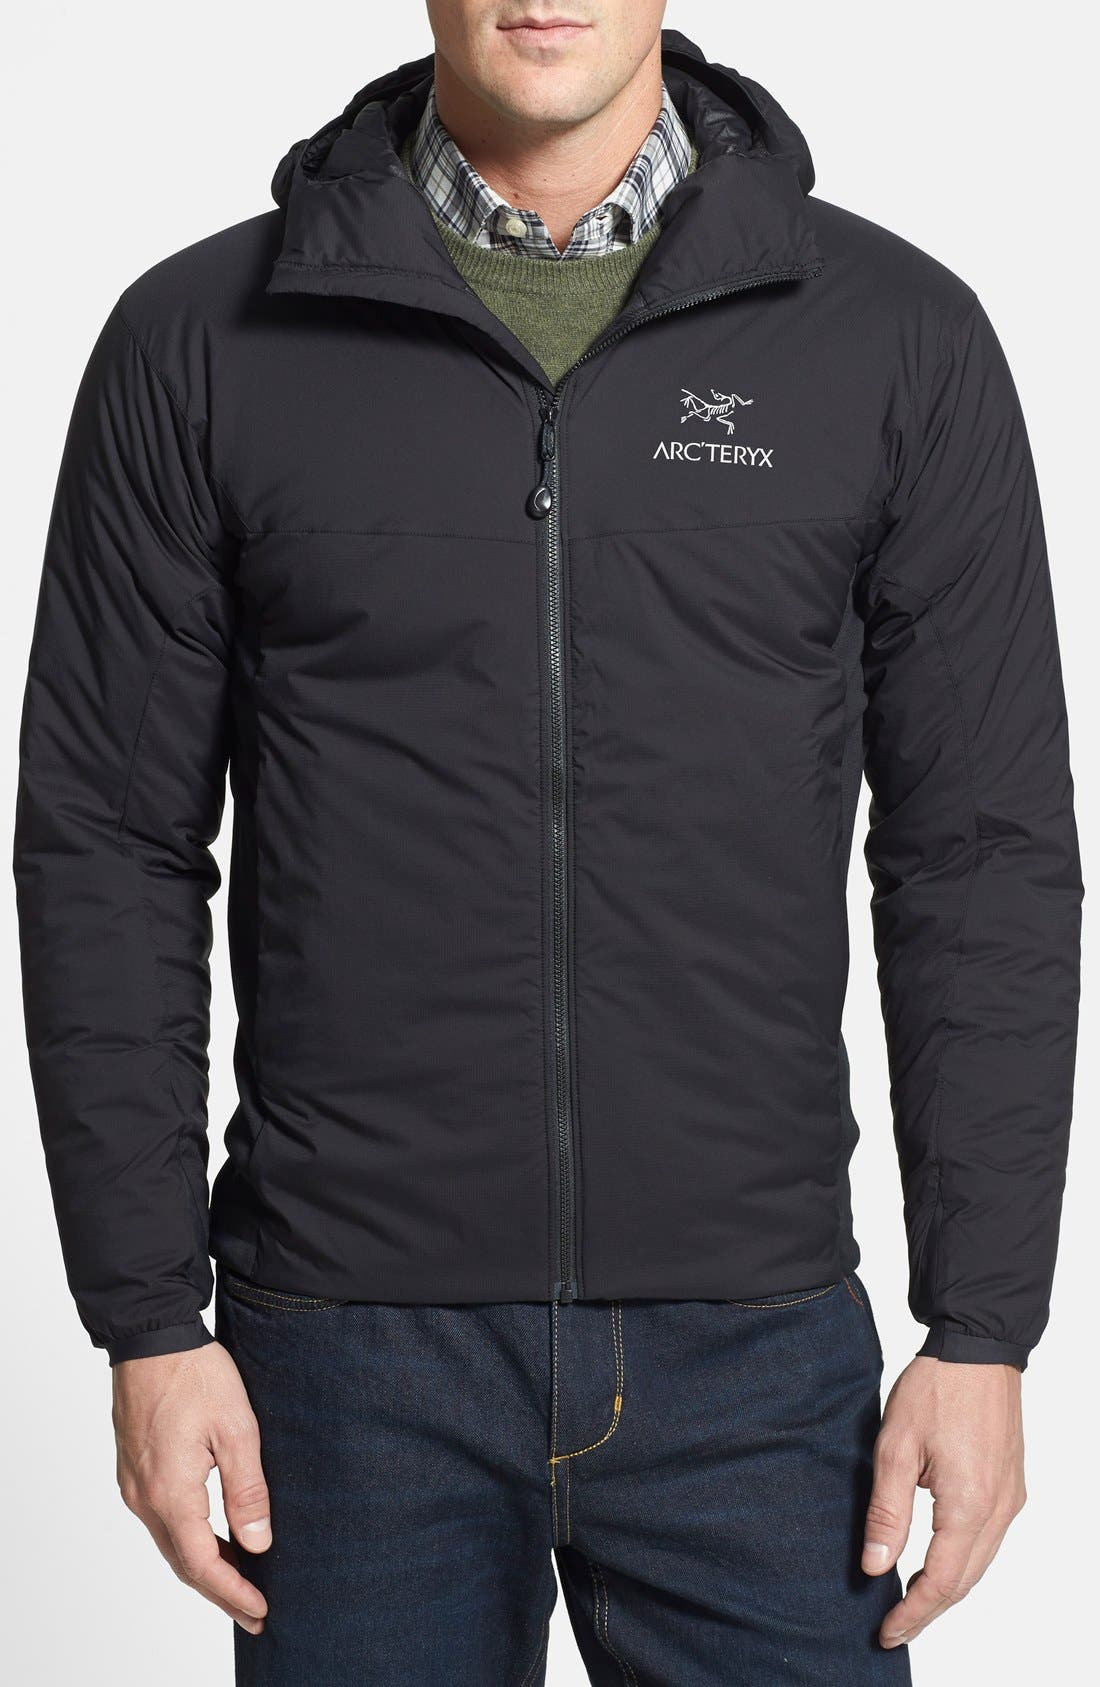 ARC'TERYX 'Atom LT' Trim Fit Wind & Water